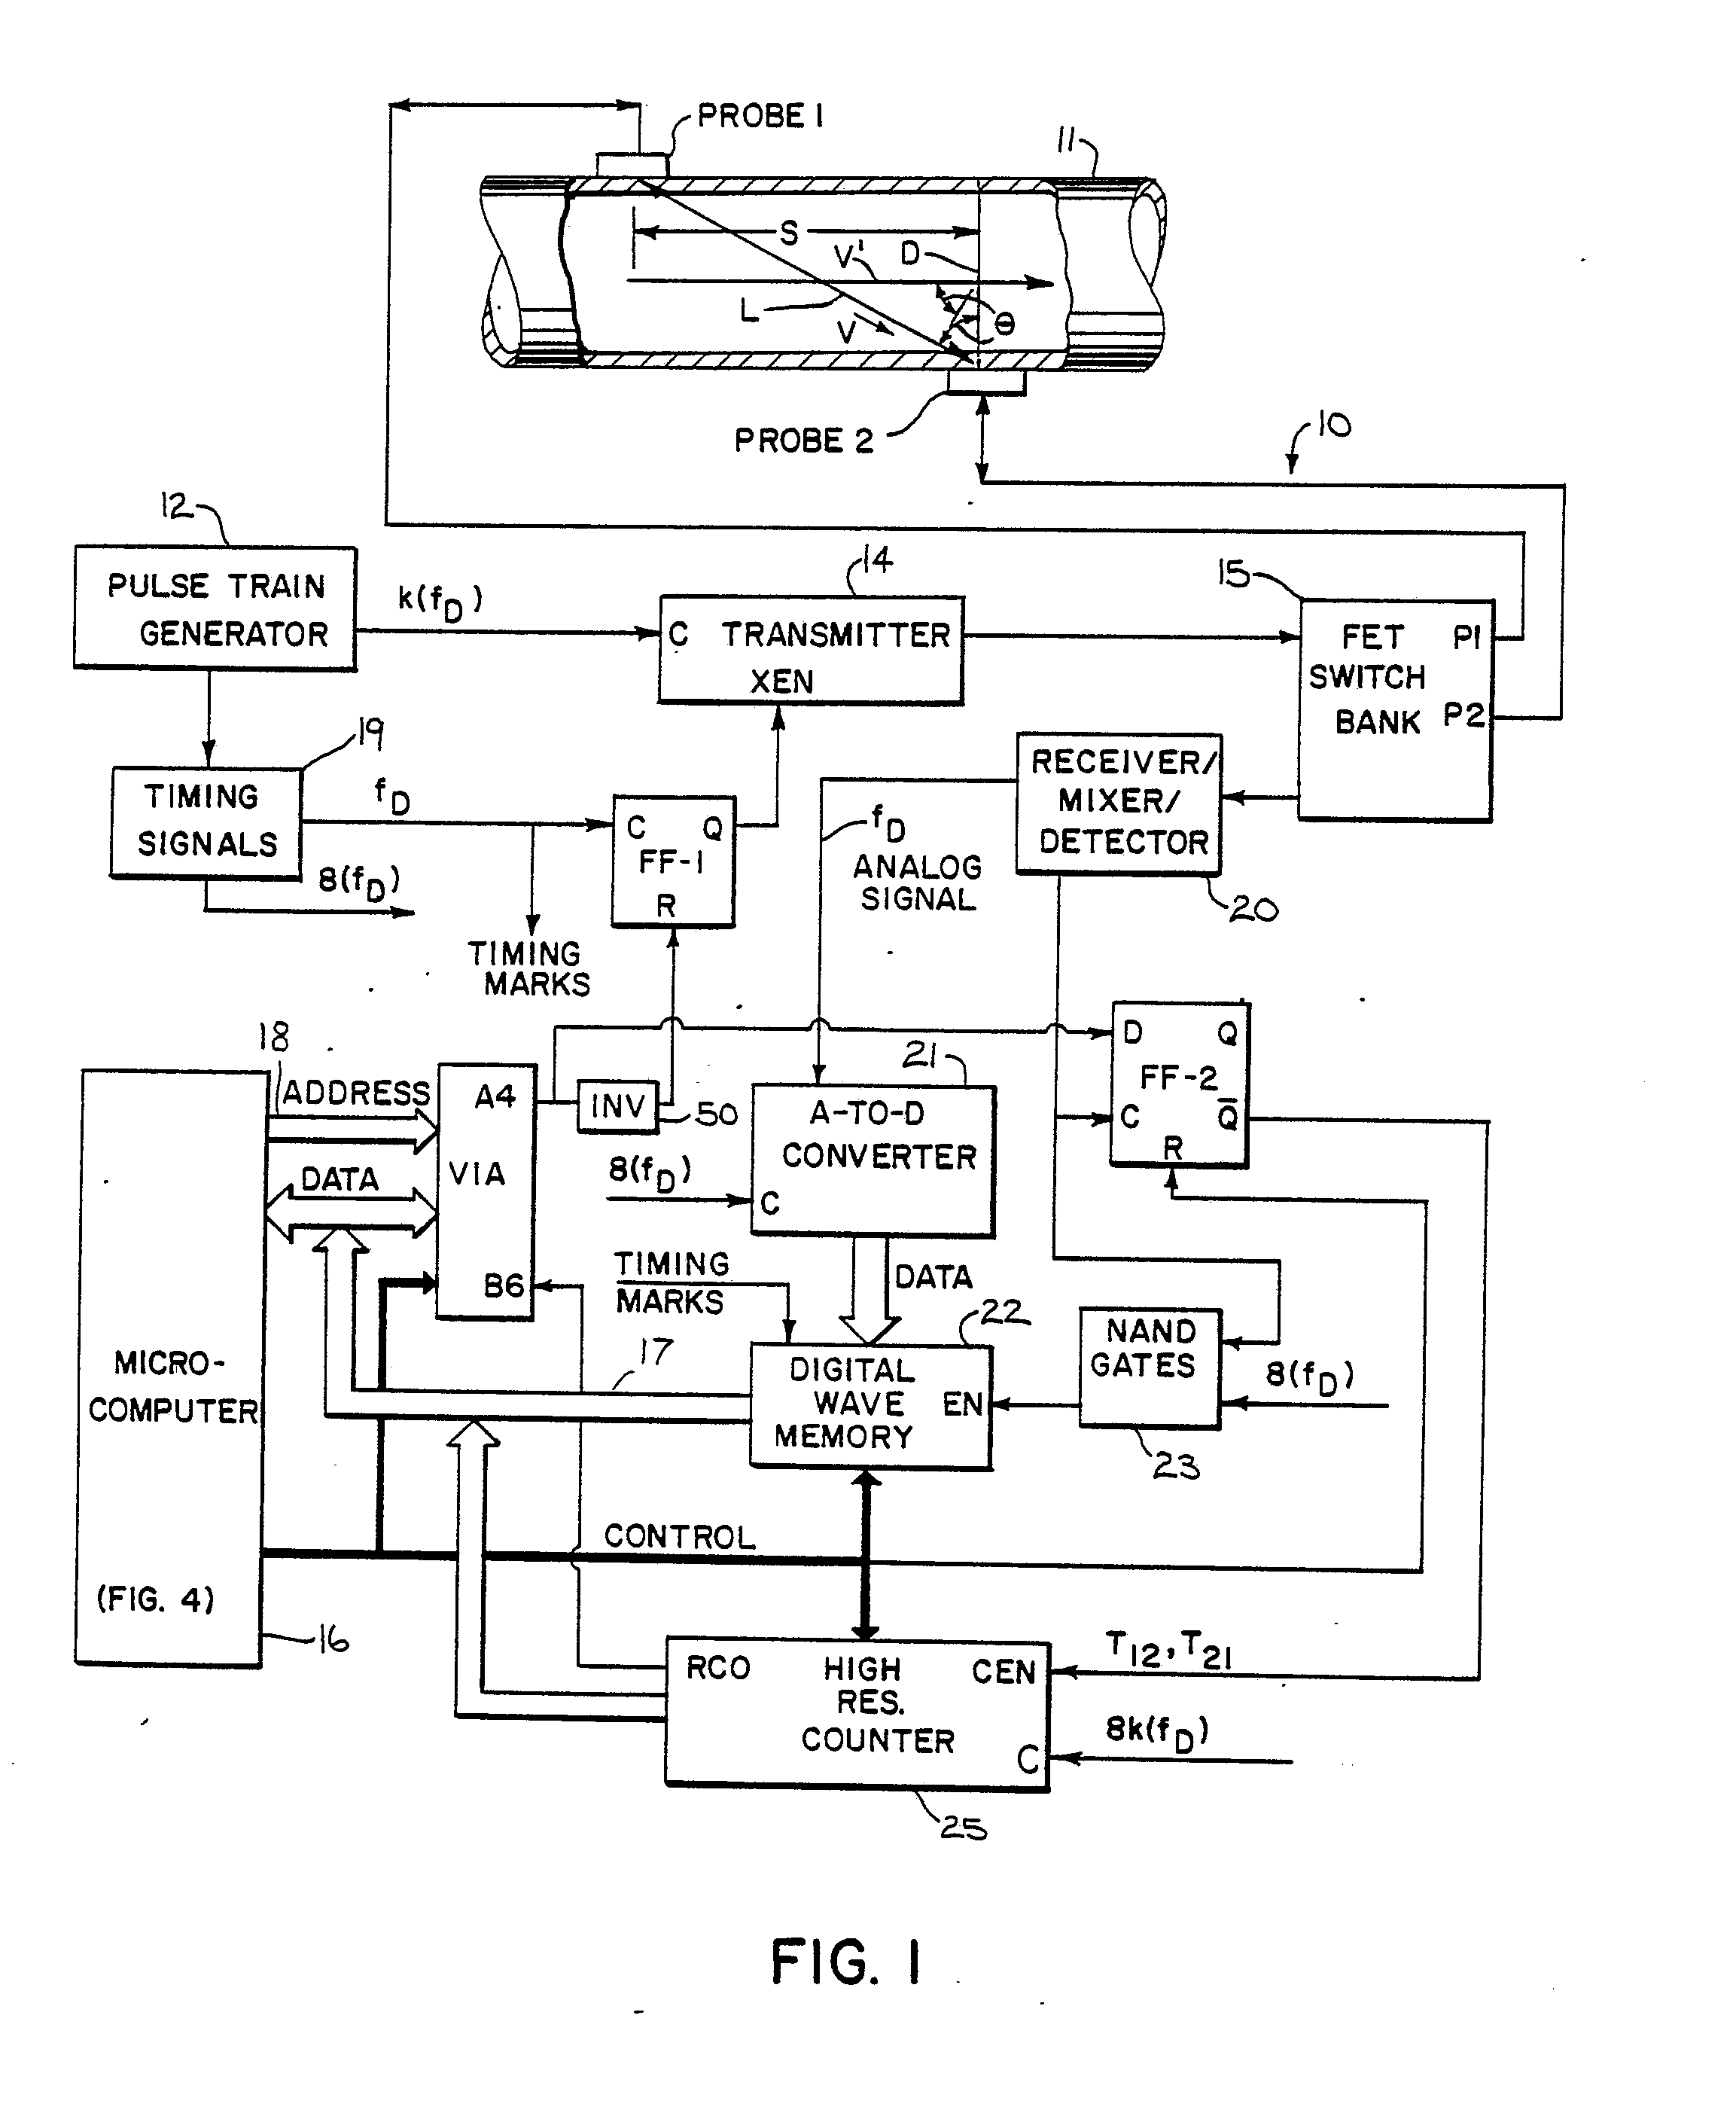 Patent Ep0200896a2 Digital Flow Meter Circuit And Method For 40khz Second Ultrasonic Transmitting The Transistors Drawing